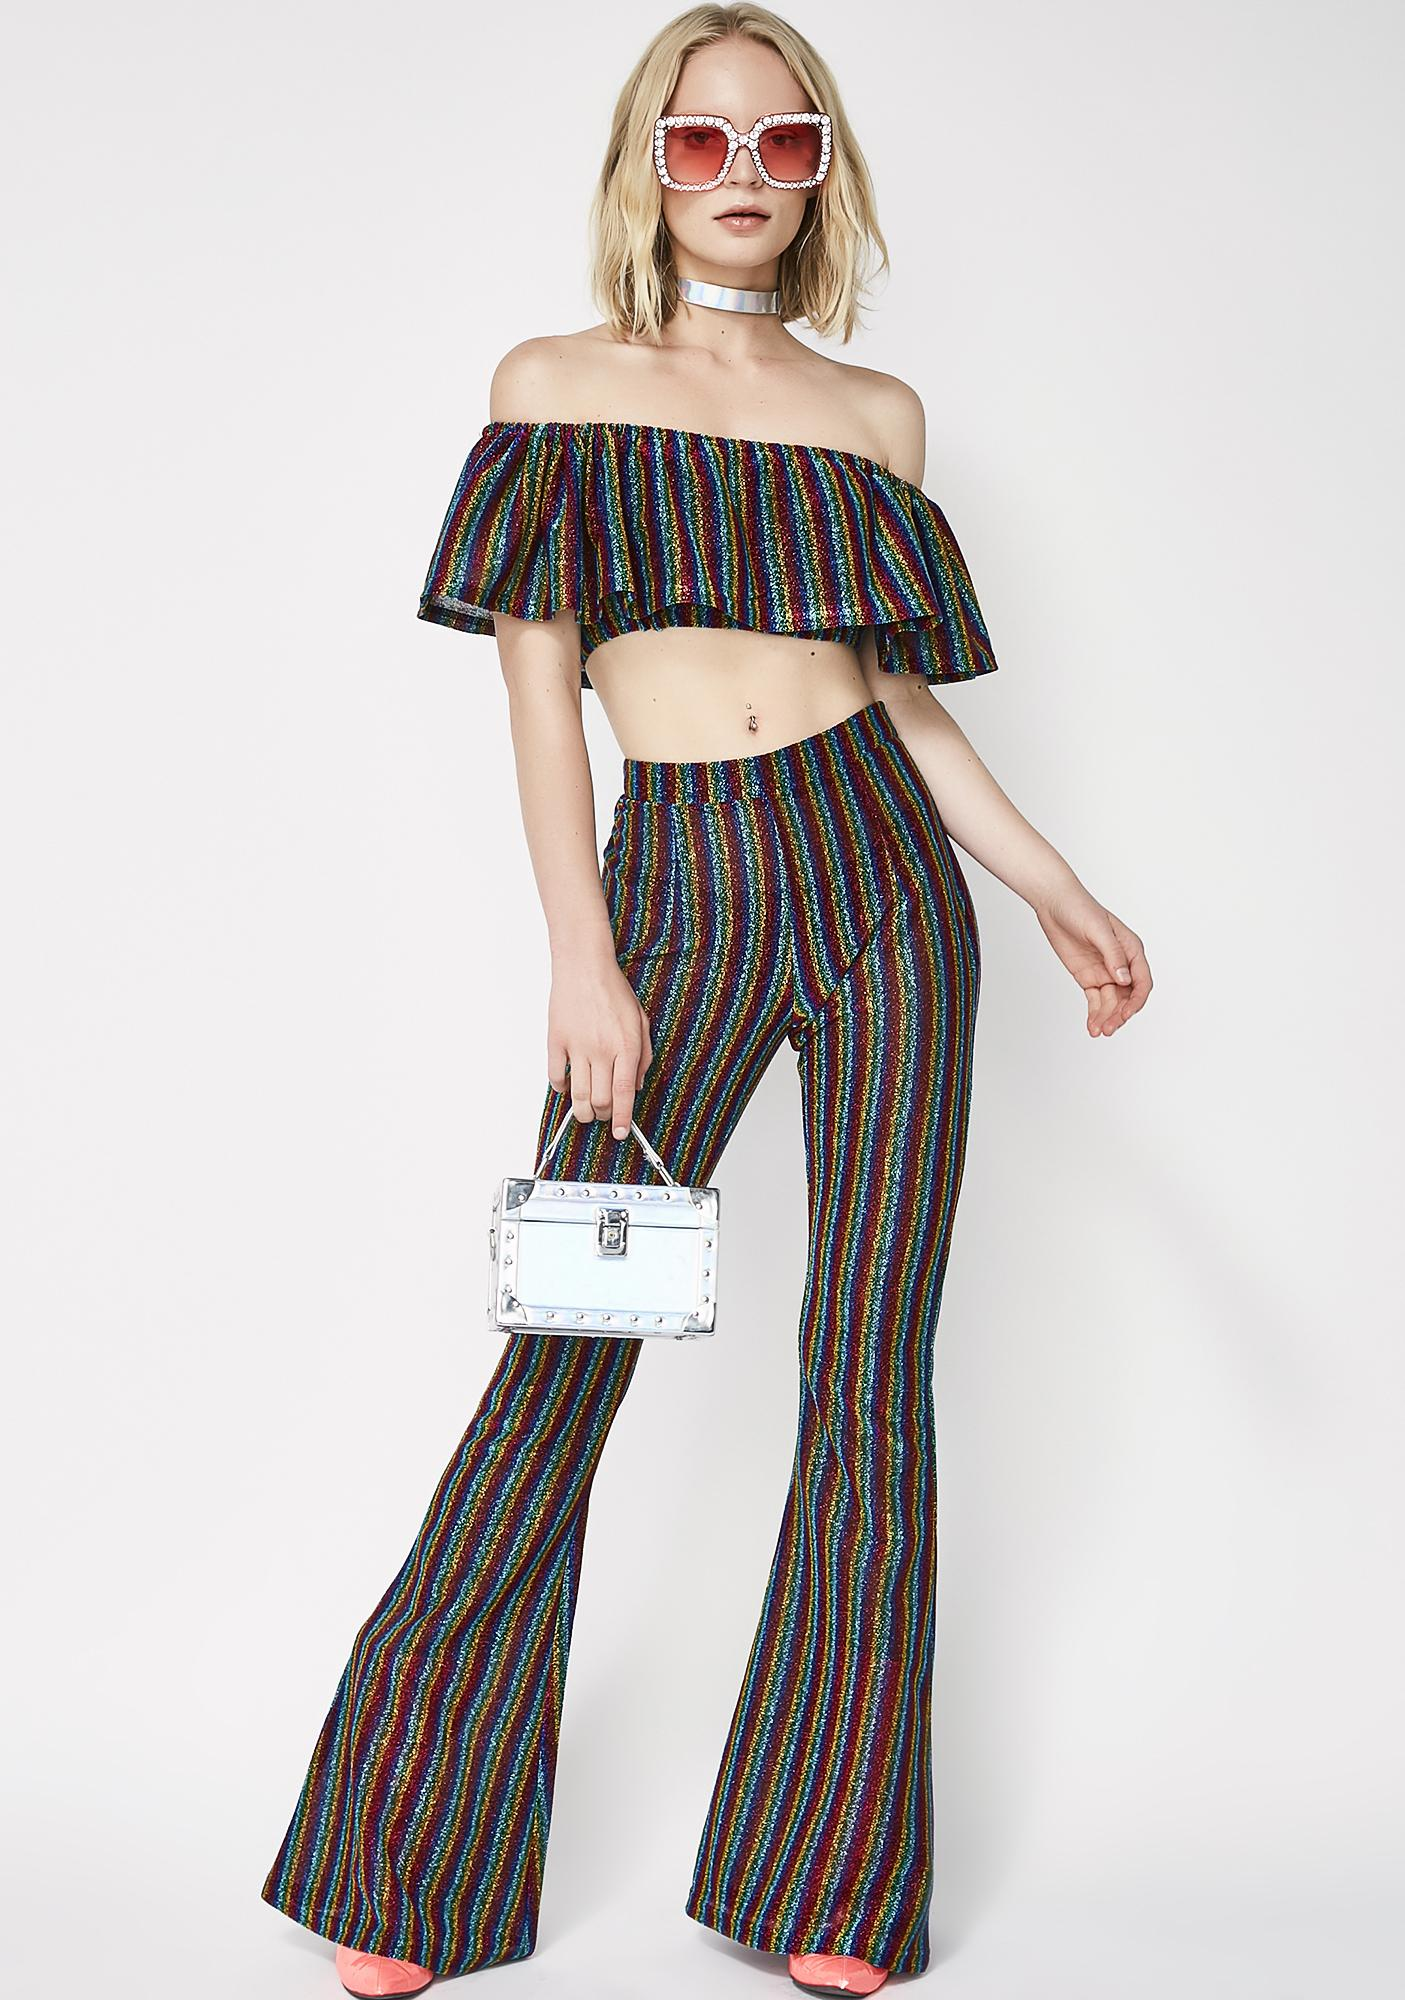 Elsie & Fred Magnetism Crop Top